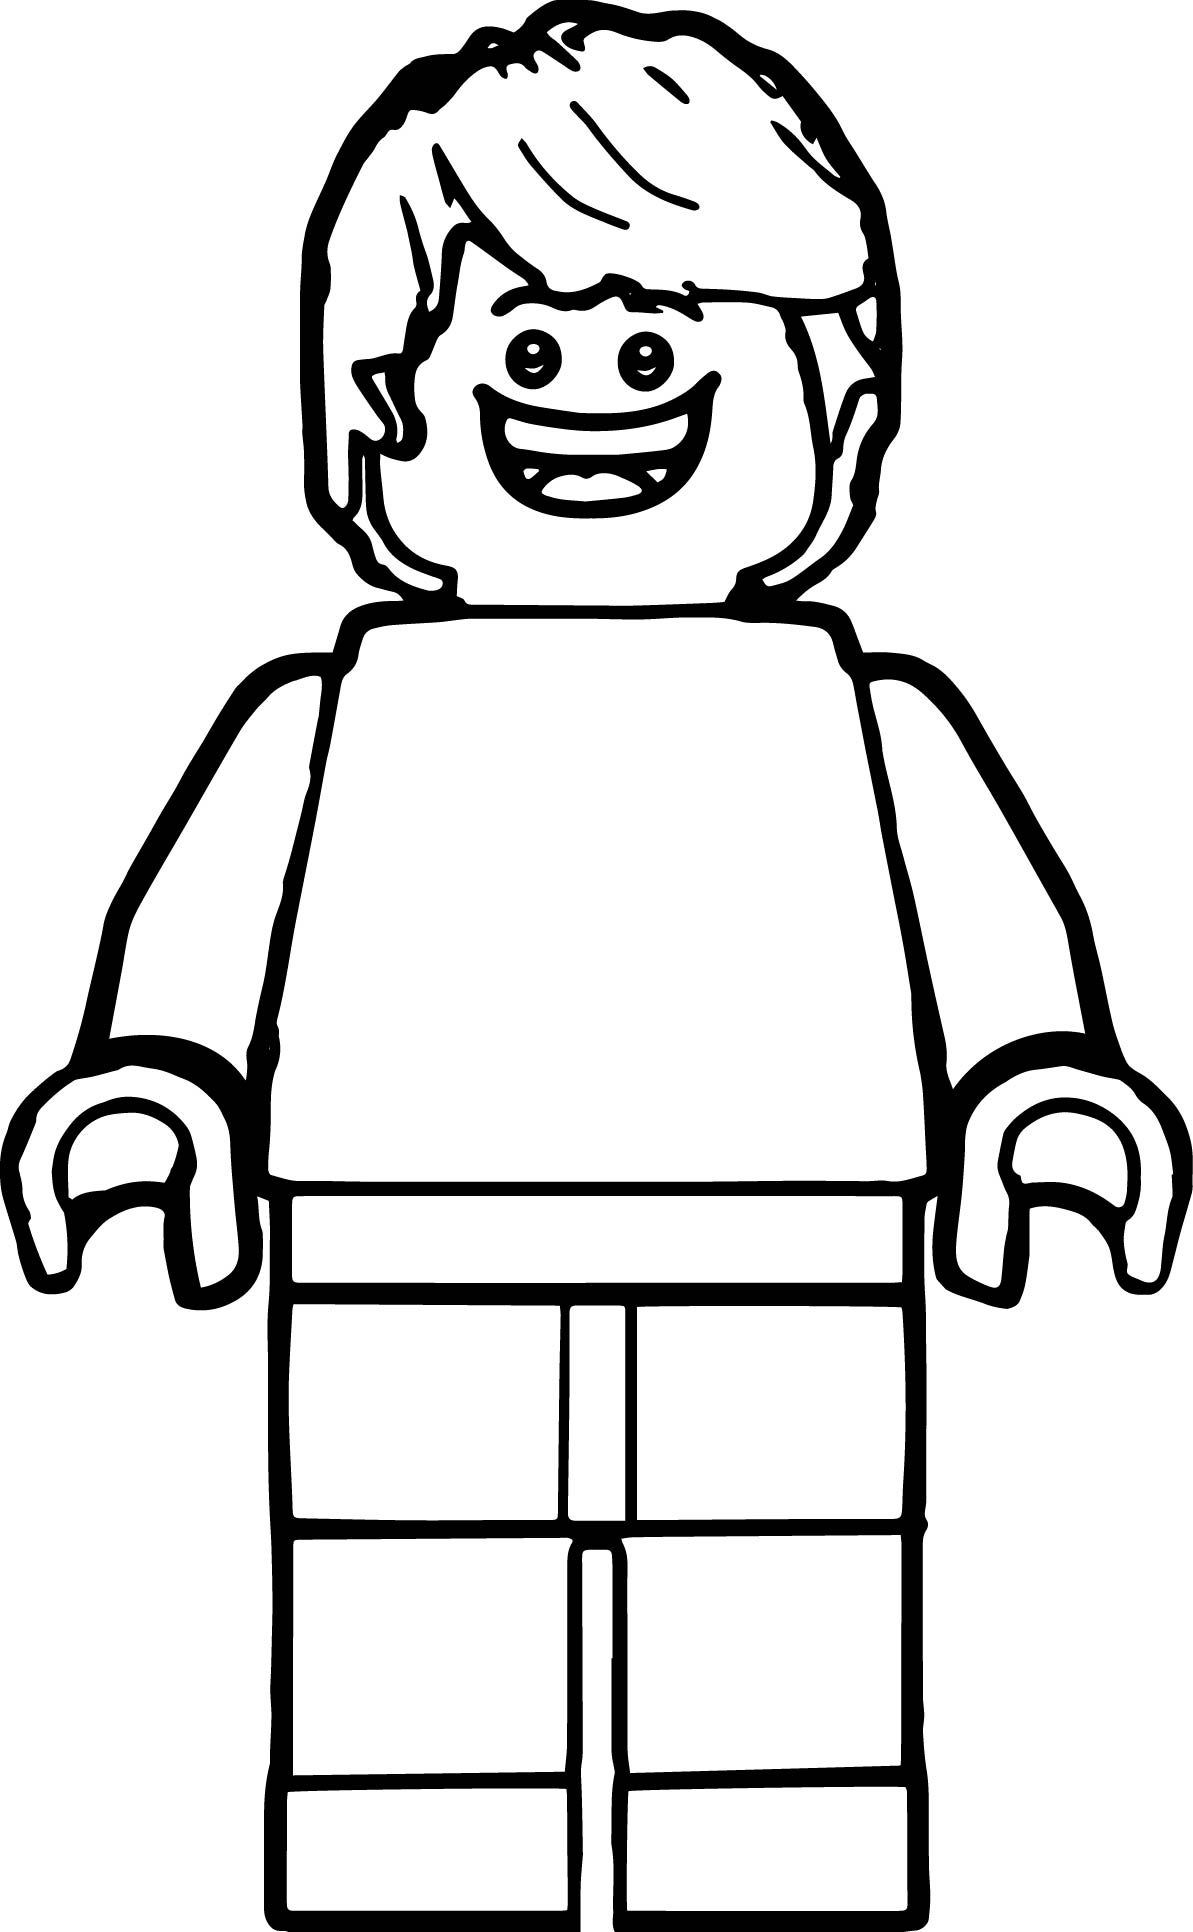 lego minifig coloring pages - photo#32